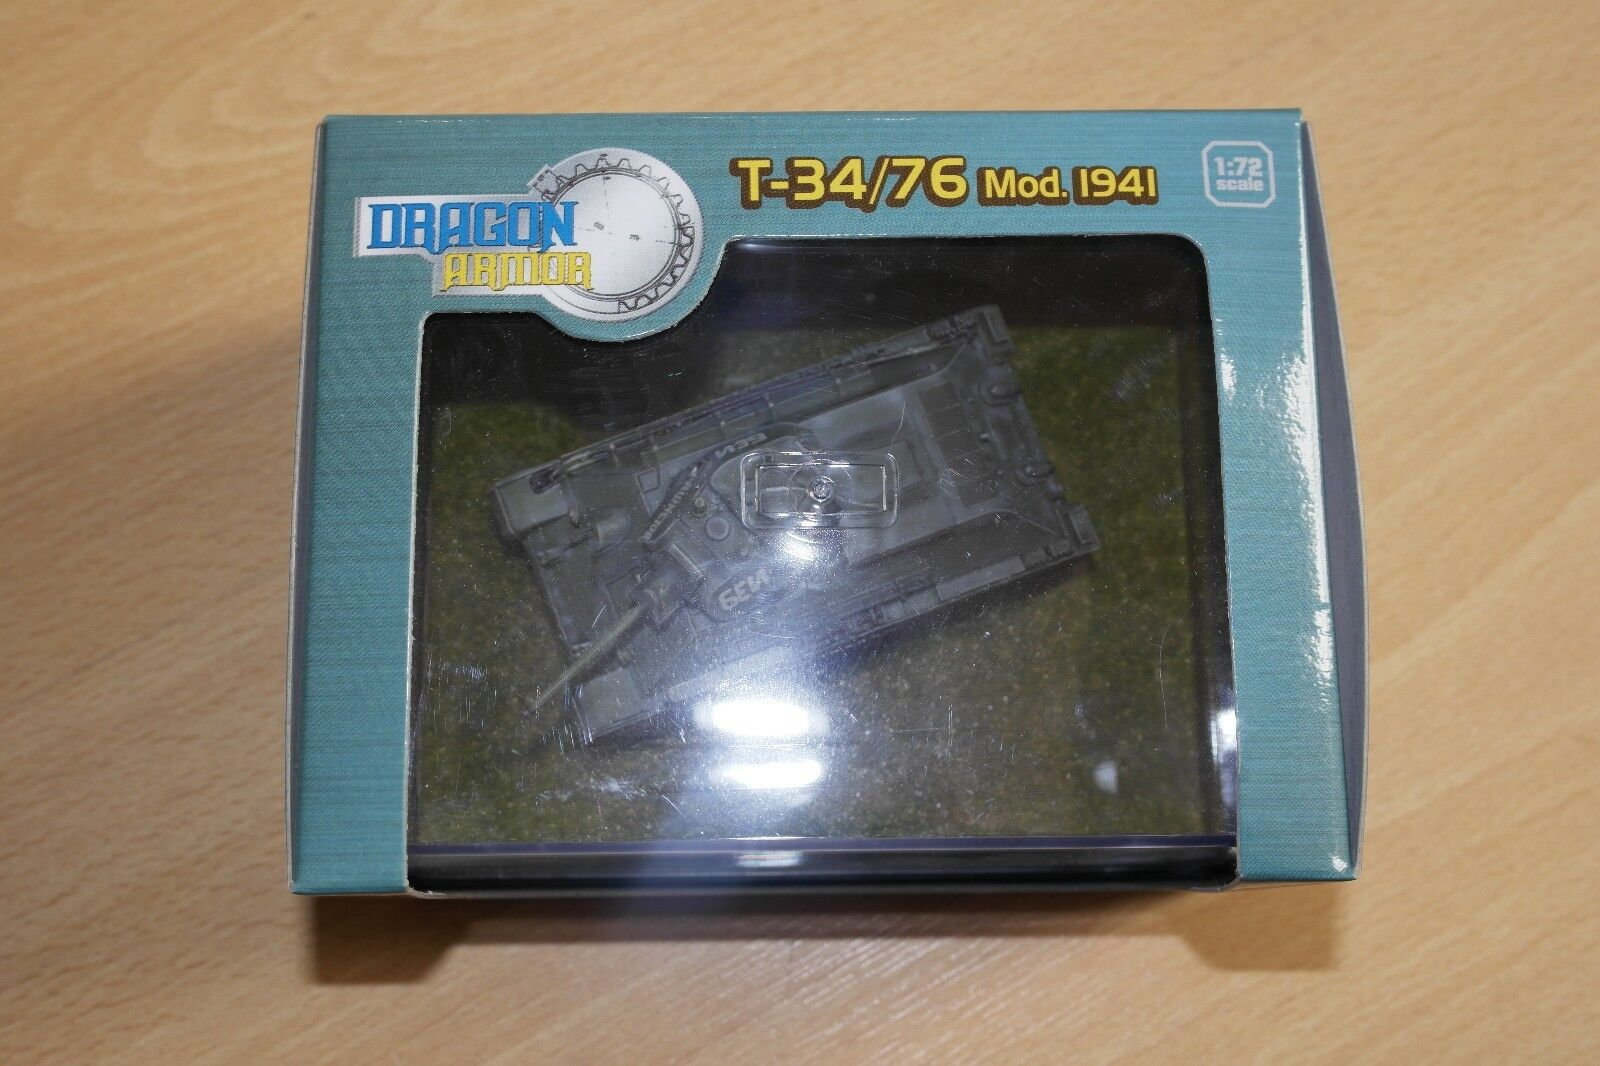 DRAGON ARMOR 1 72 T-34 76 MOD.1941 EASTERN FRONT 1941